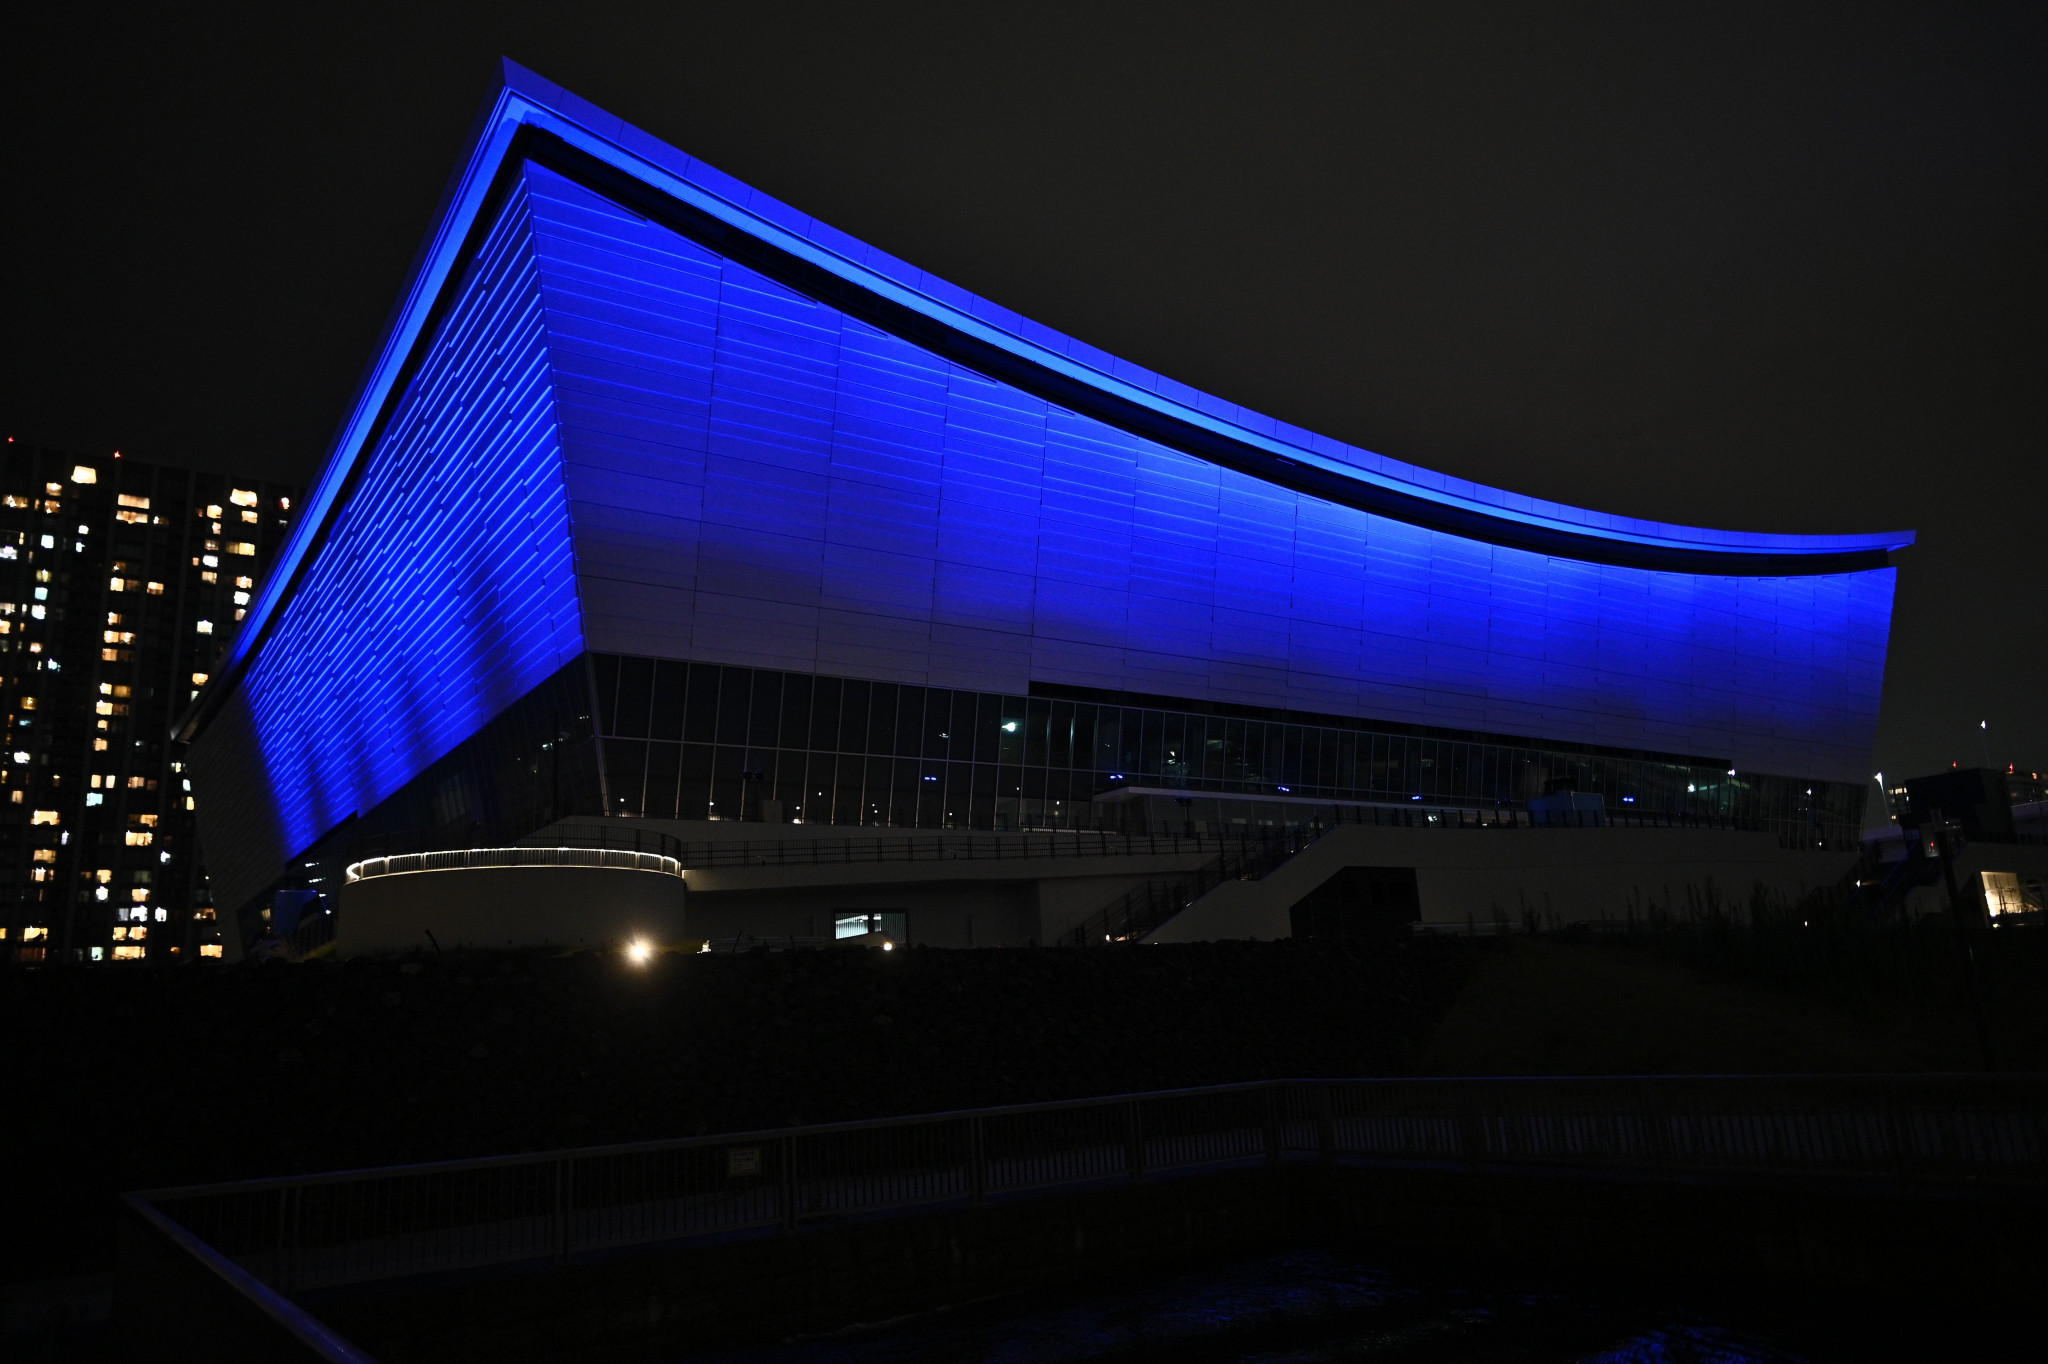 The Ariake Arena was one of the Tokyo 2020 venues which was lit up in blue to mark the milestone ©Tokyo 2020